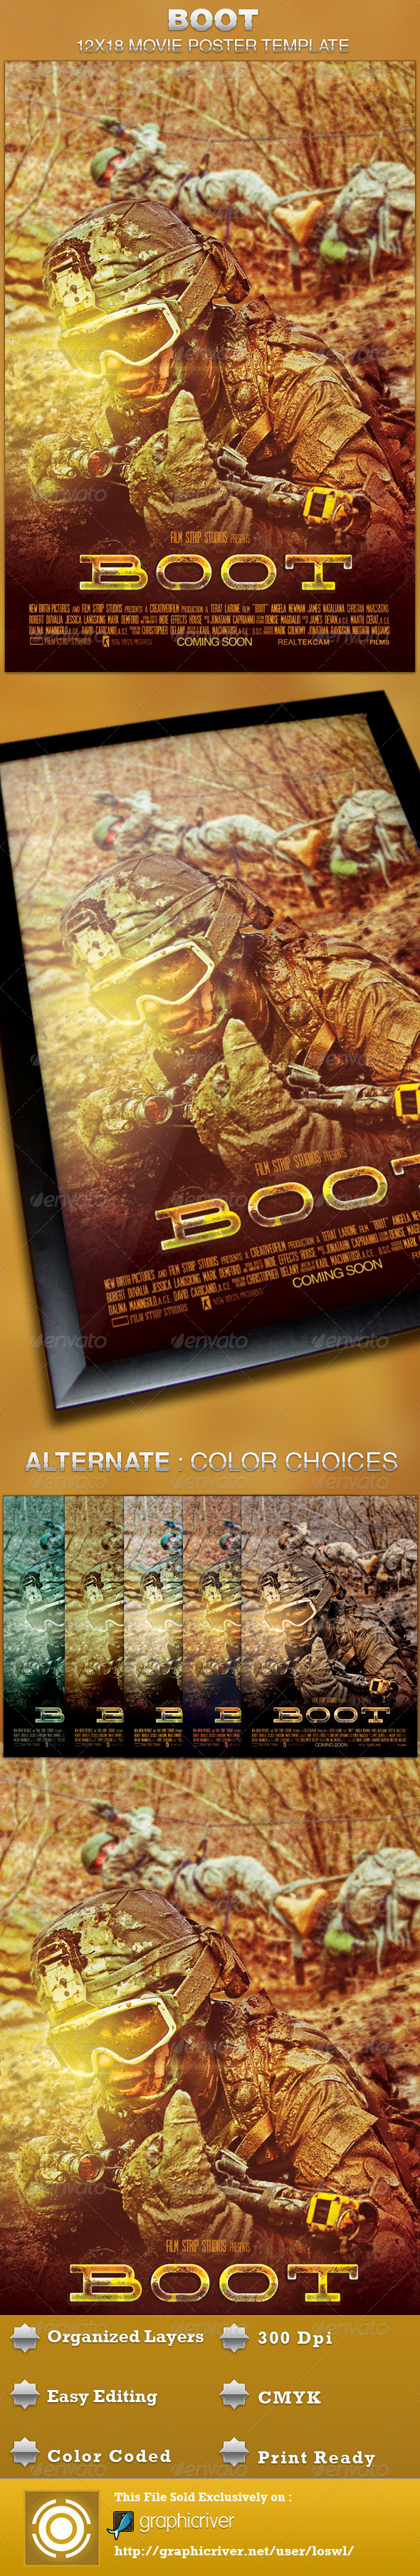 GraphicRiver Boot Movie Poster Template 4682748